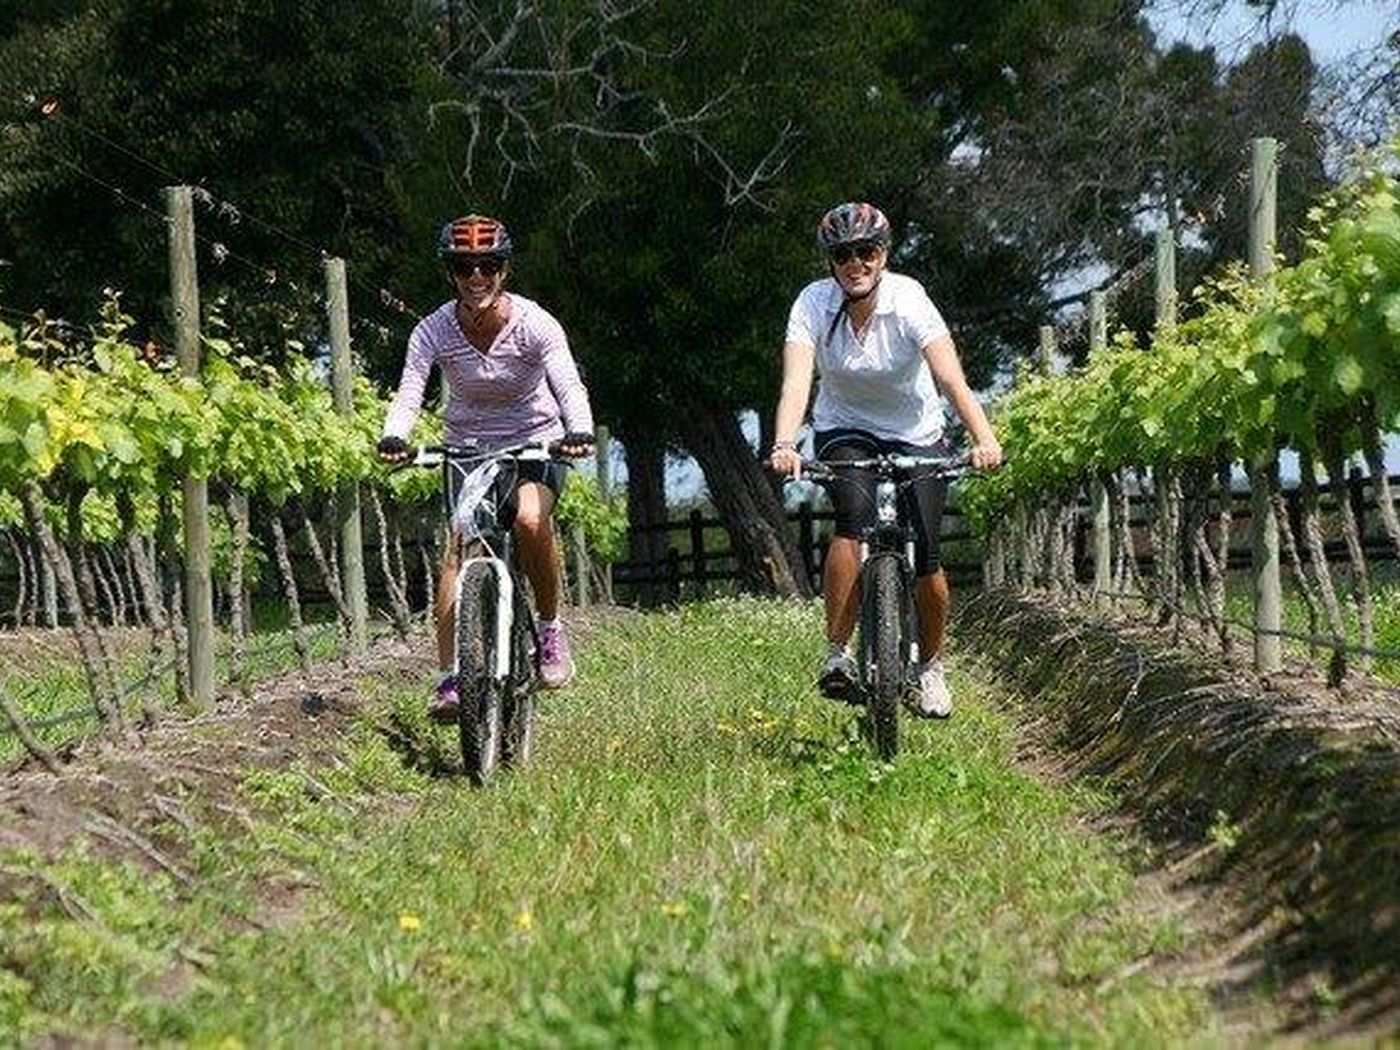 Cycling in the vines Plett